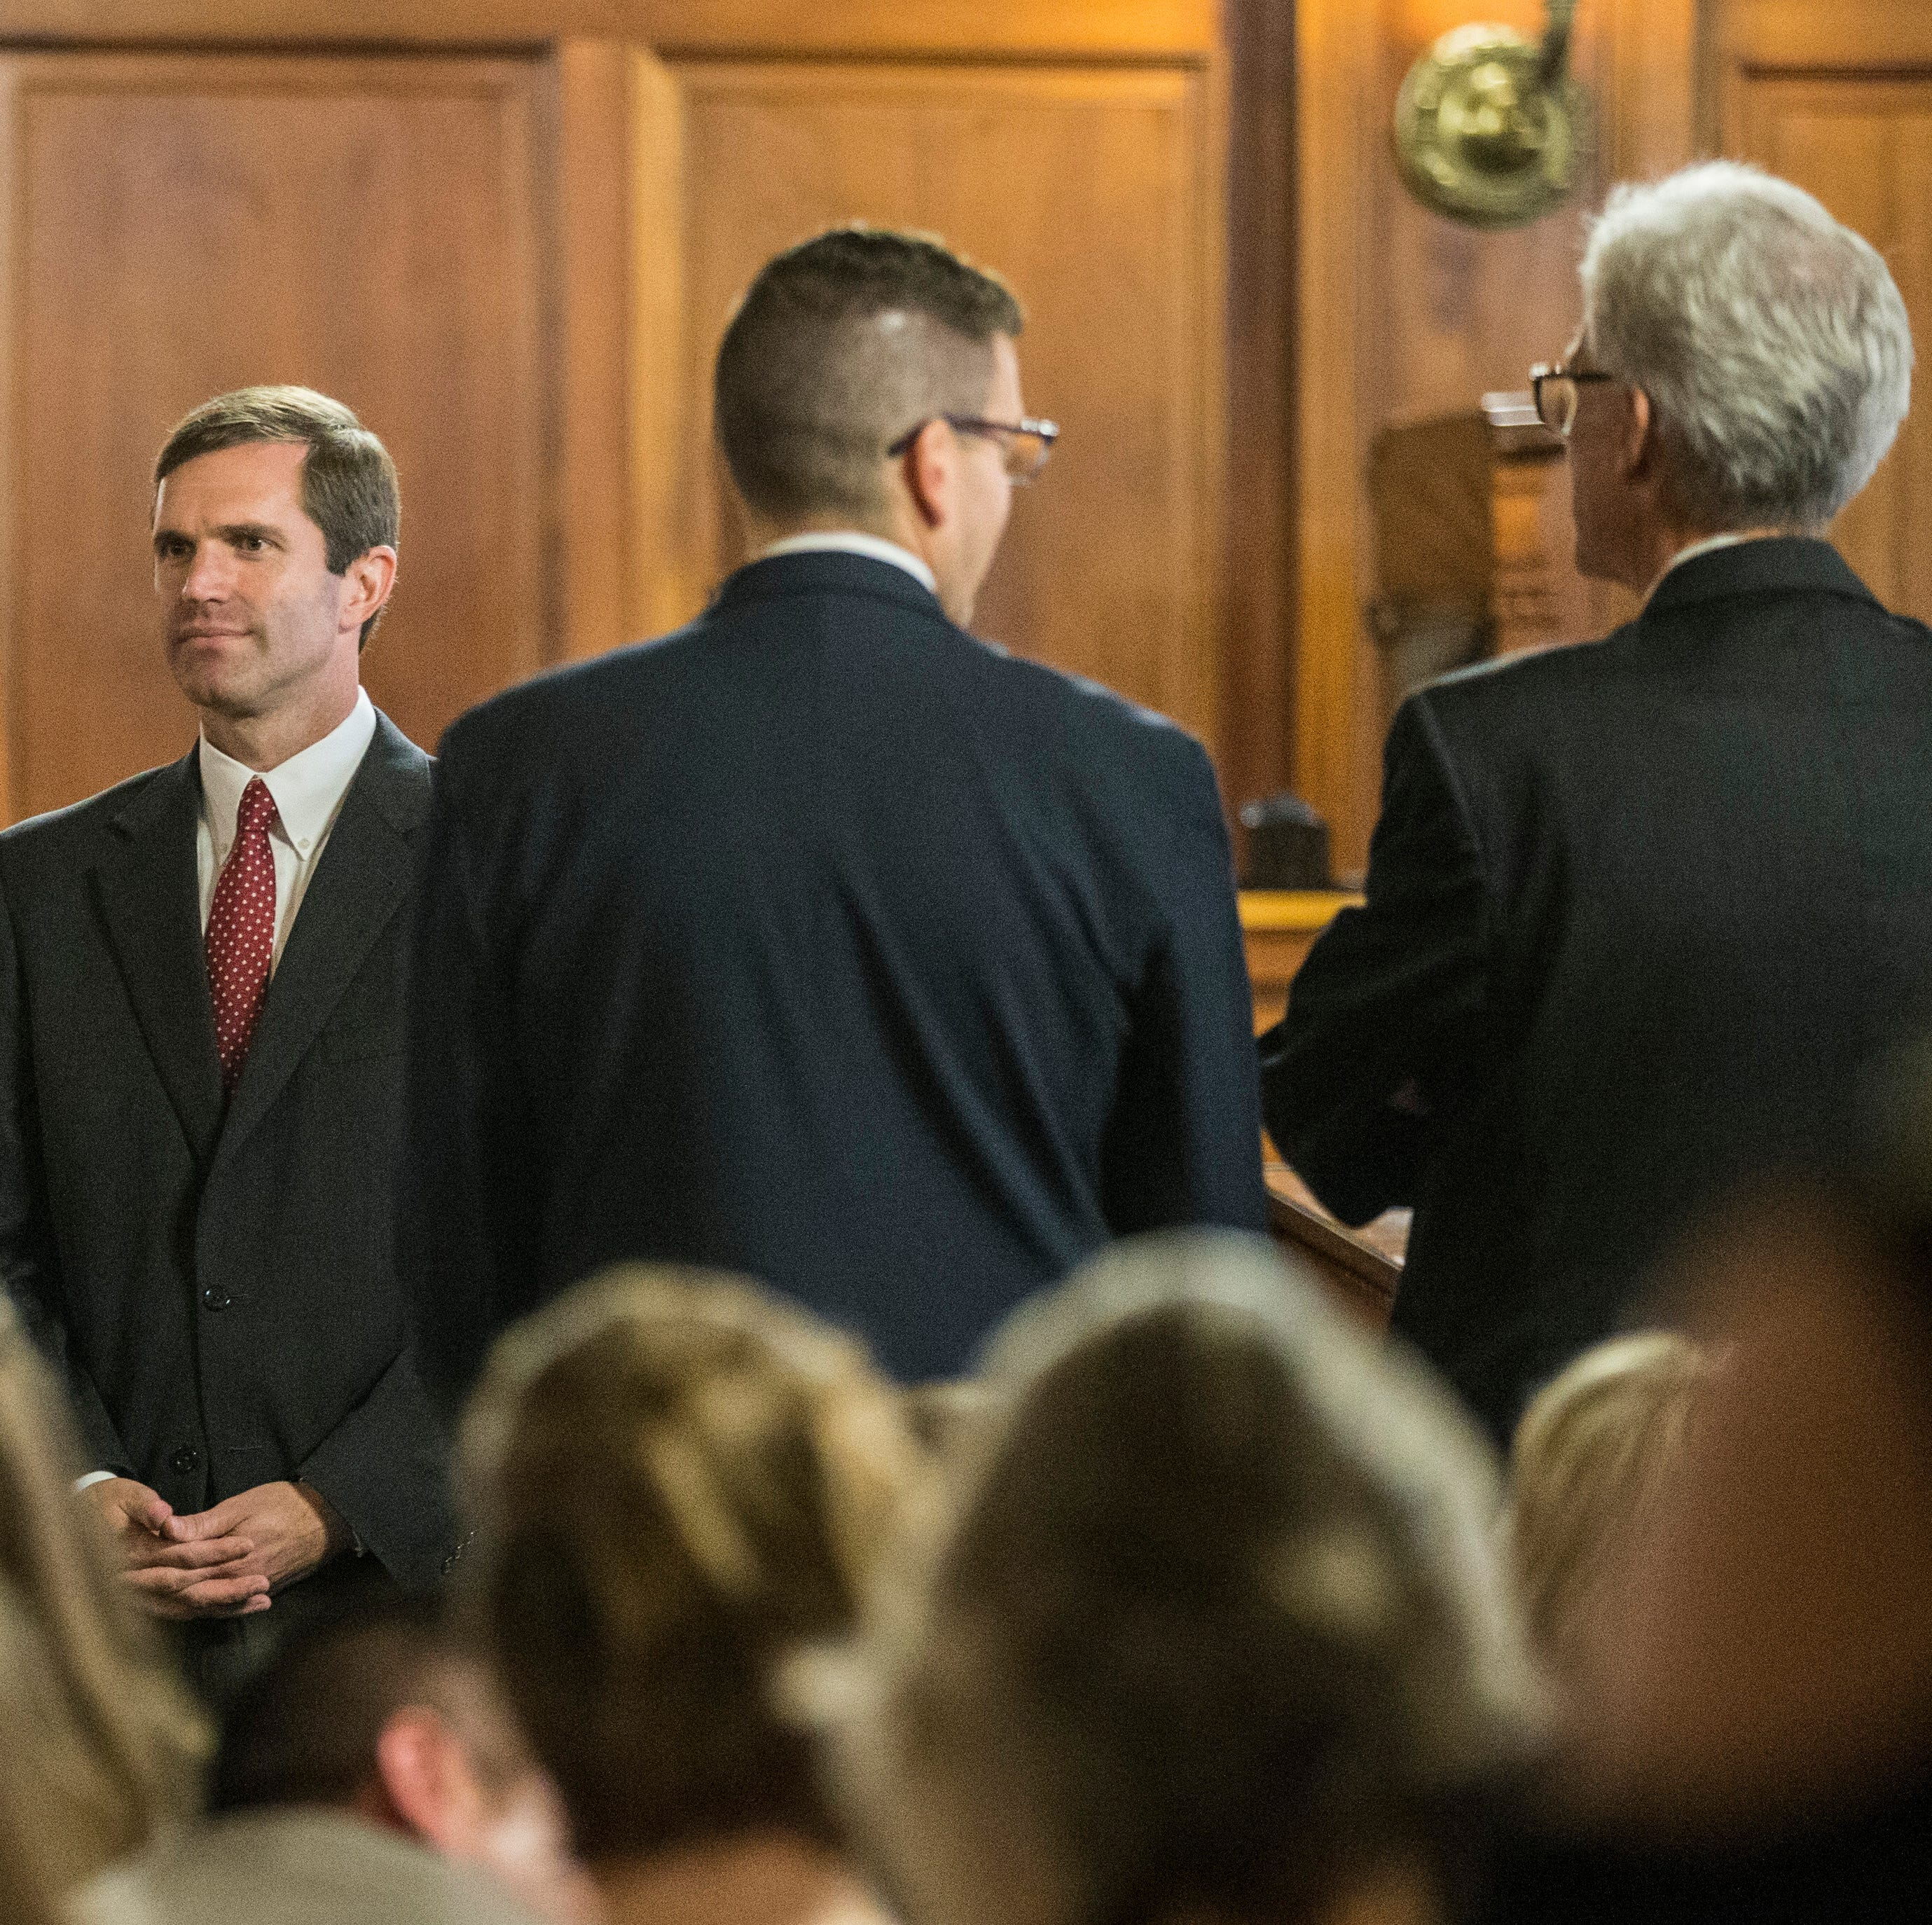 Attorney General Andy Beshear, standing inside the Kentucky Supreme Court before the hearing about the pension bill, says Republicans illegally zipped the bill through the legislative process and that it violates contract rights of thousands of public employees.Sept. 20, 2018